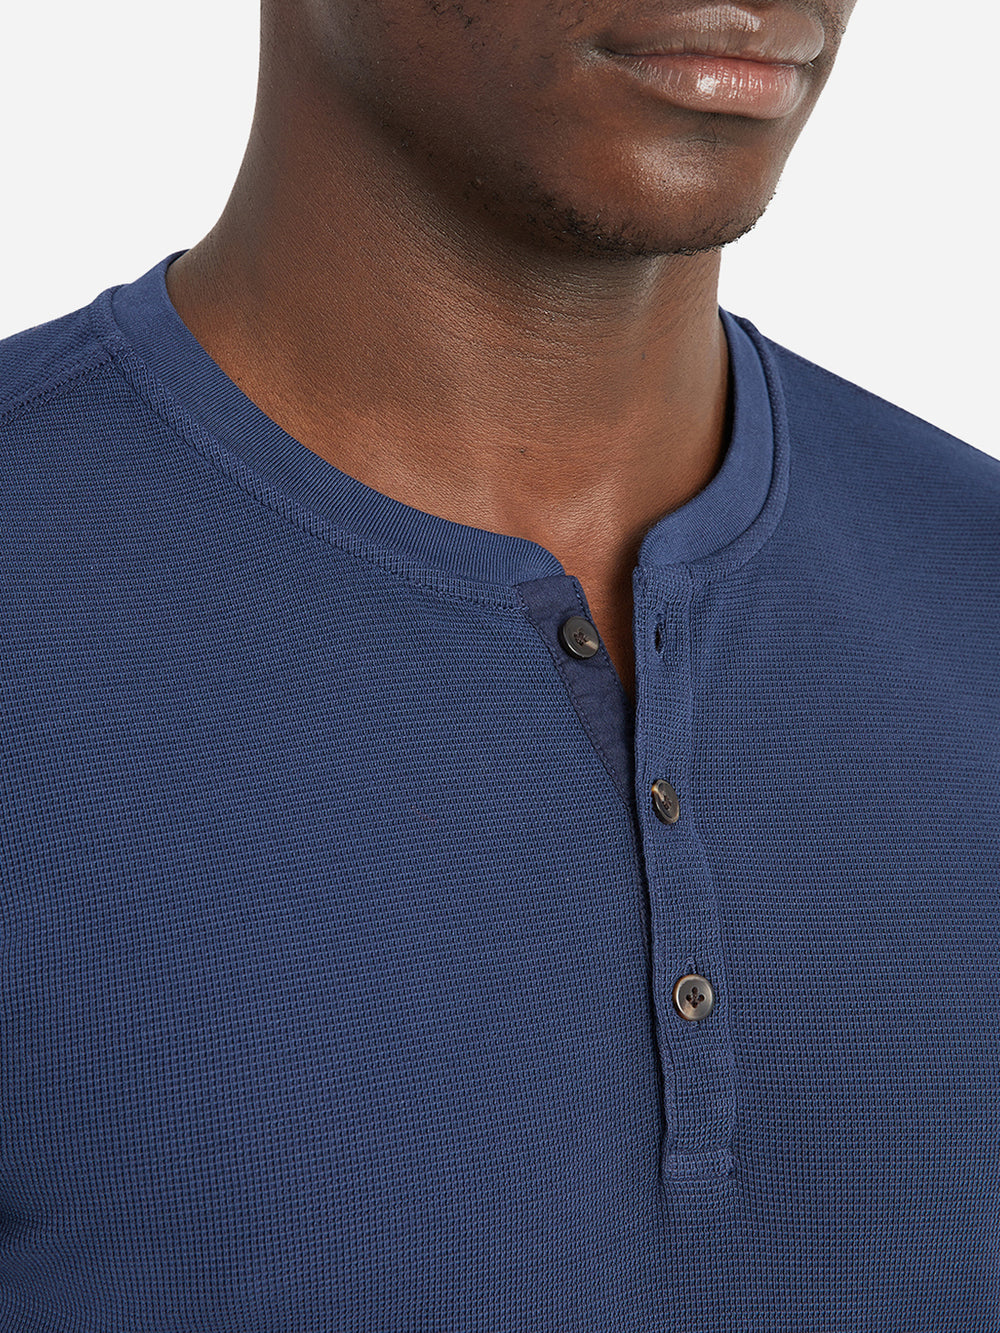 ONS Clothing Men's COURT WAFFLE HENLEY Pre-shrunk Cotton in NAVY